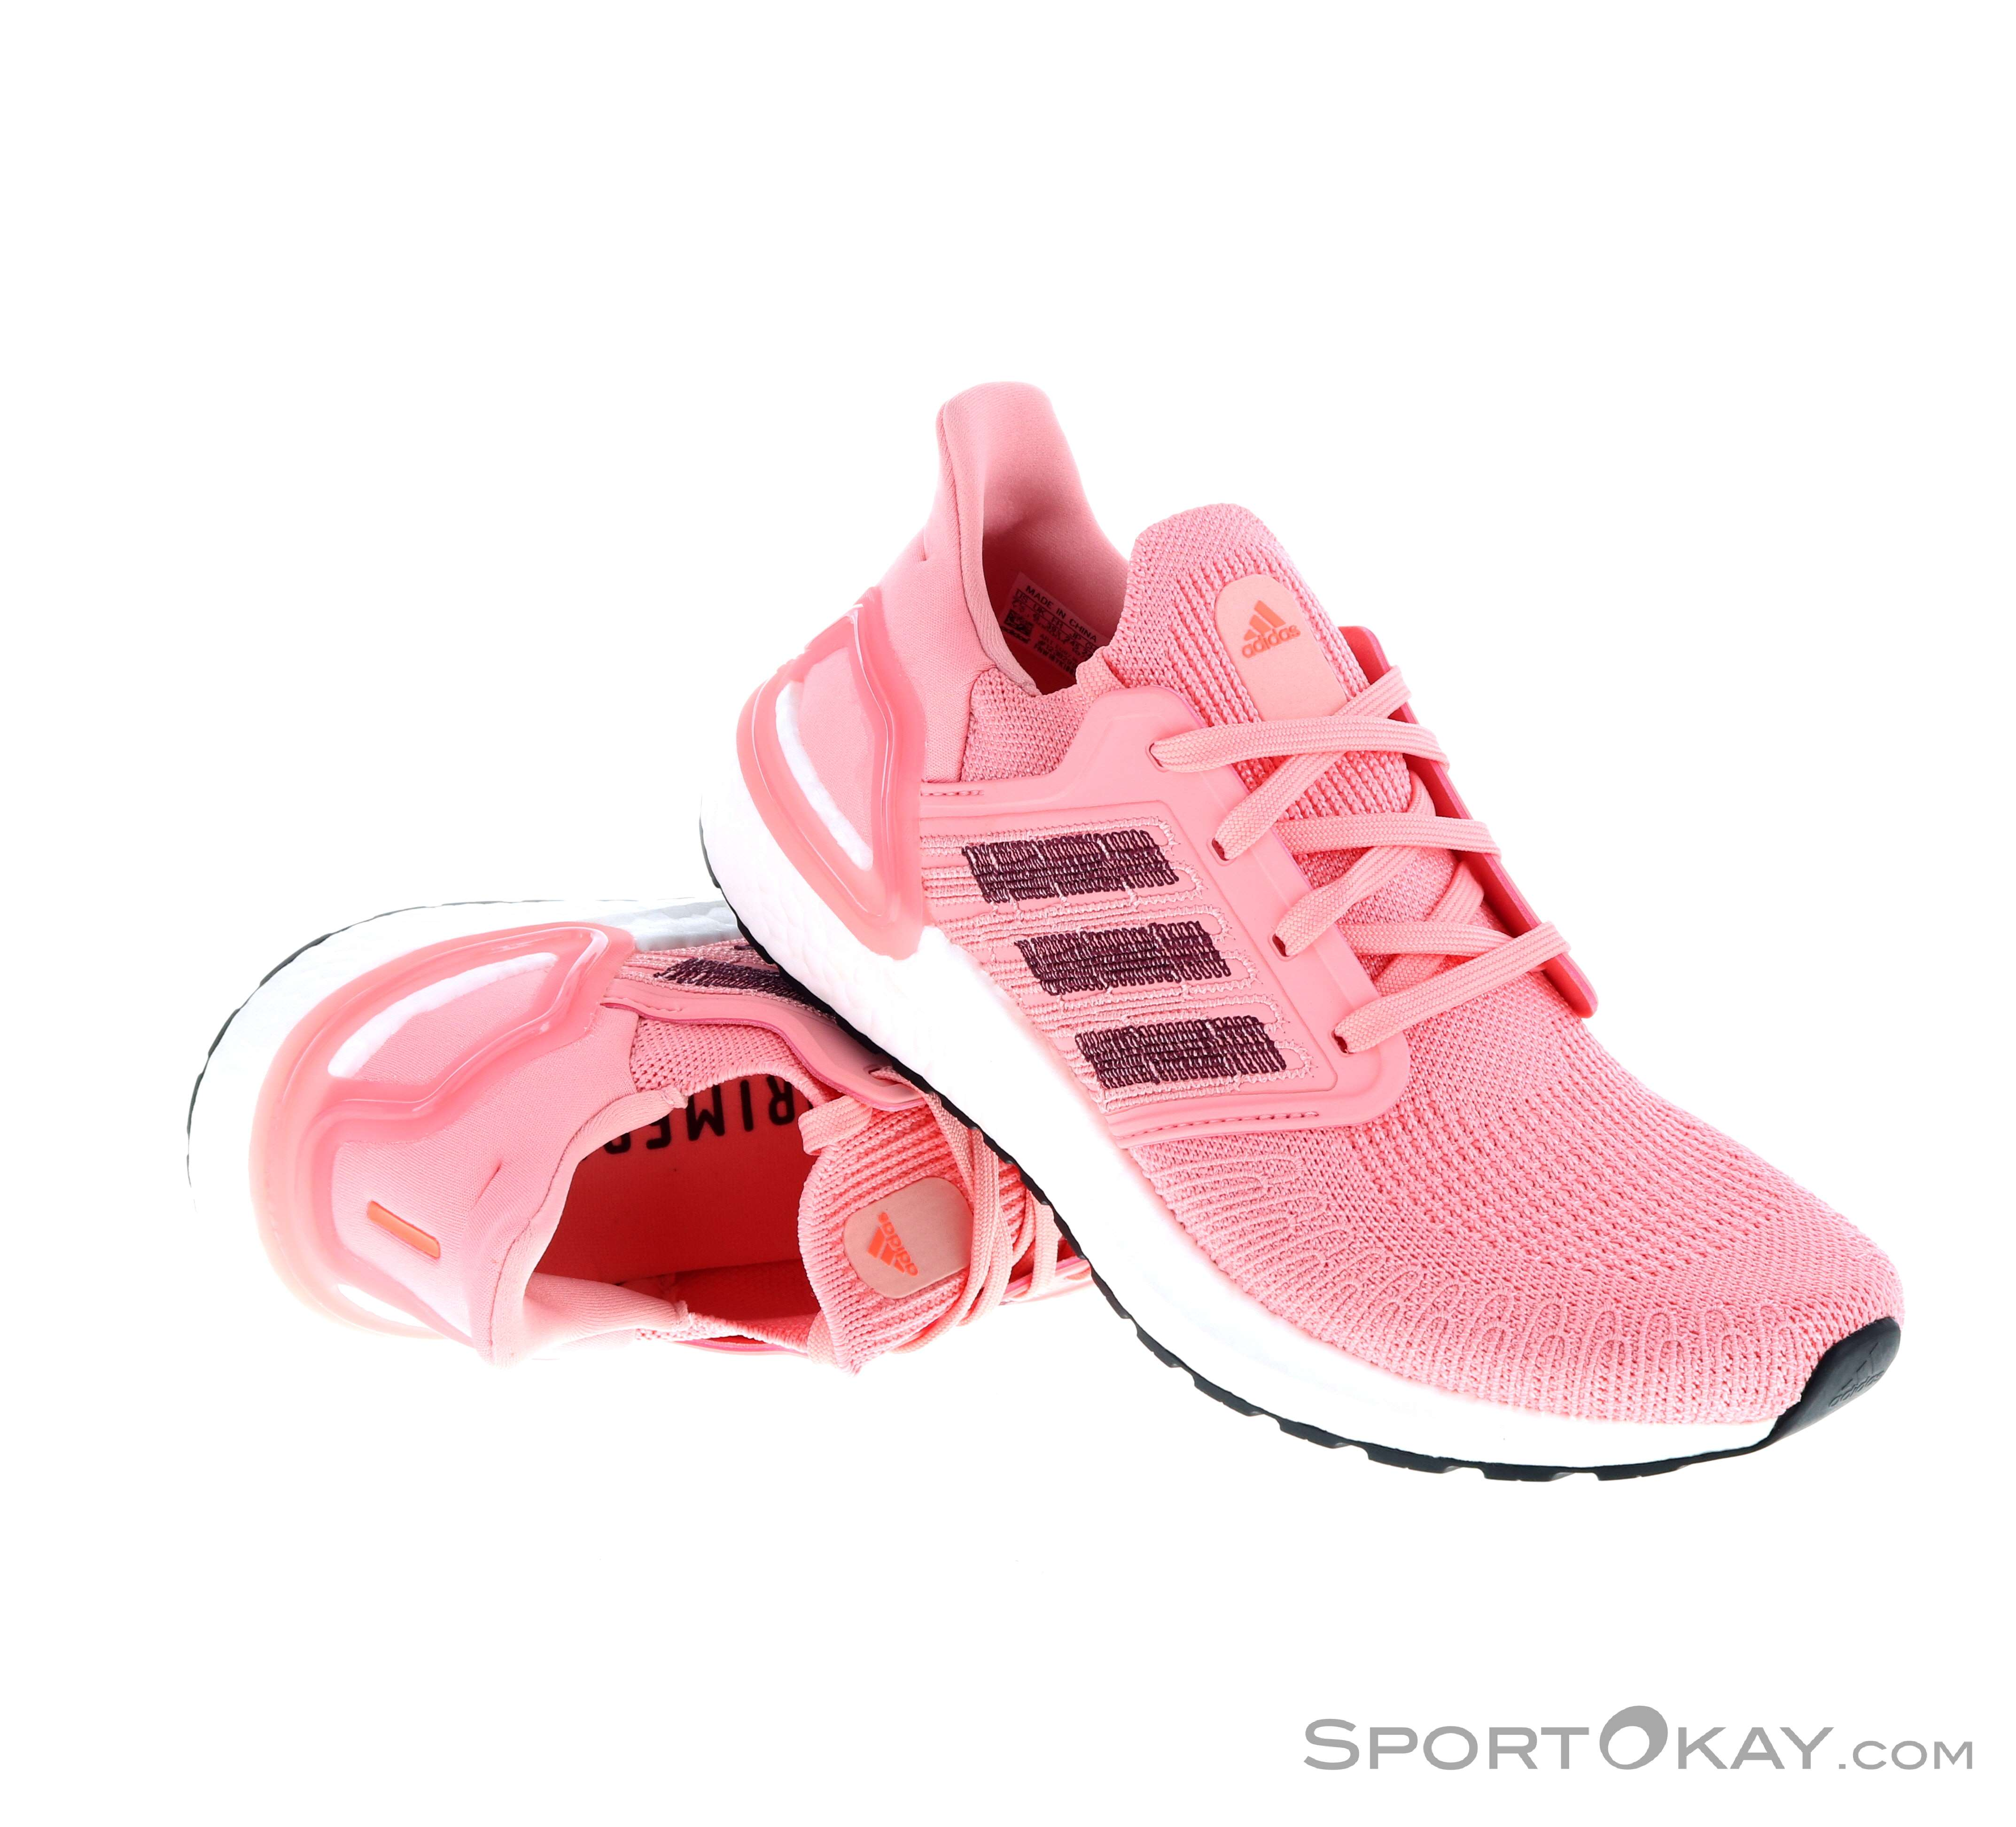 adidas Ultraboost 20 Womens Running Shoes - All-Round ...